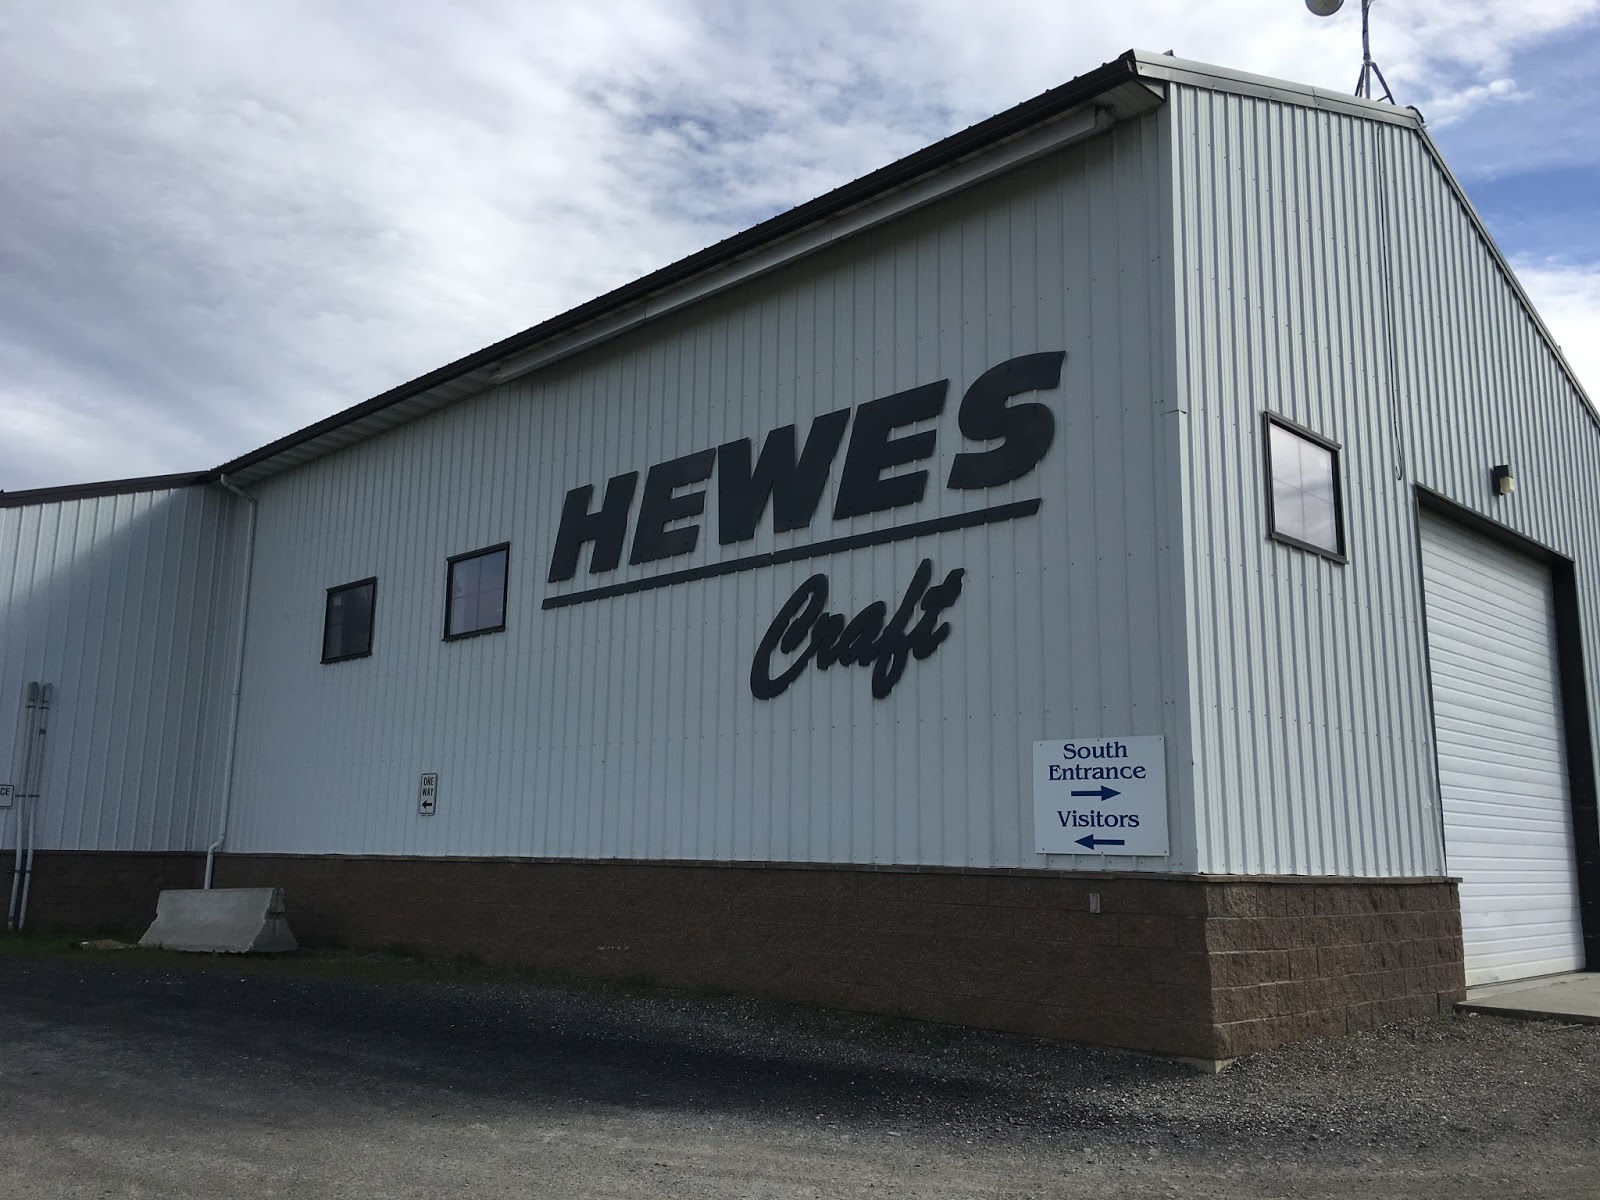 Tom and Donna Full-timer RV Blog: Hewes Craft Boats in Colville